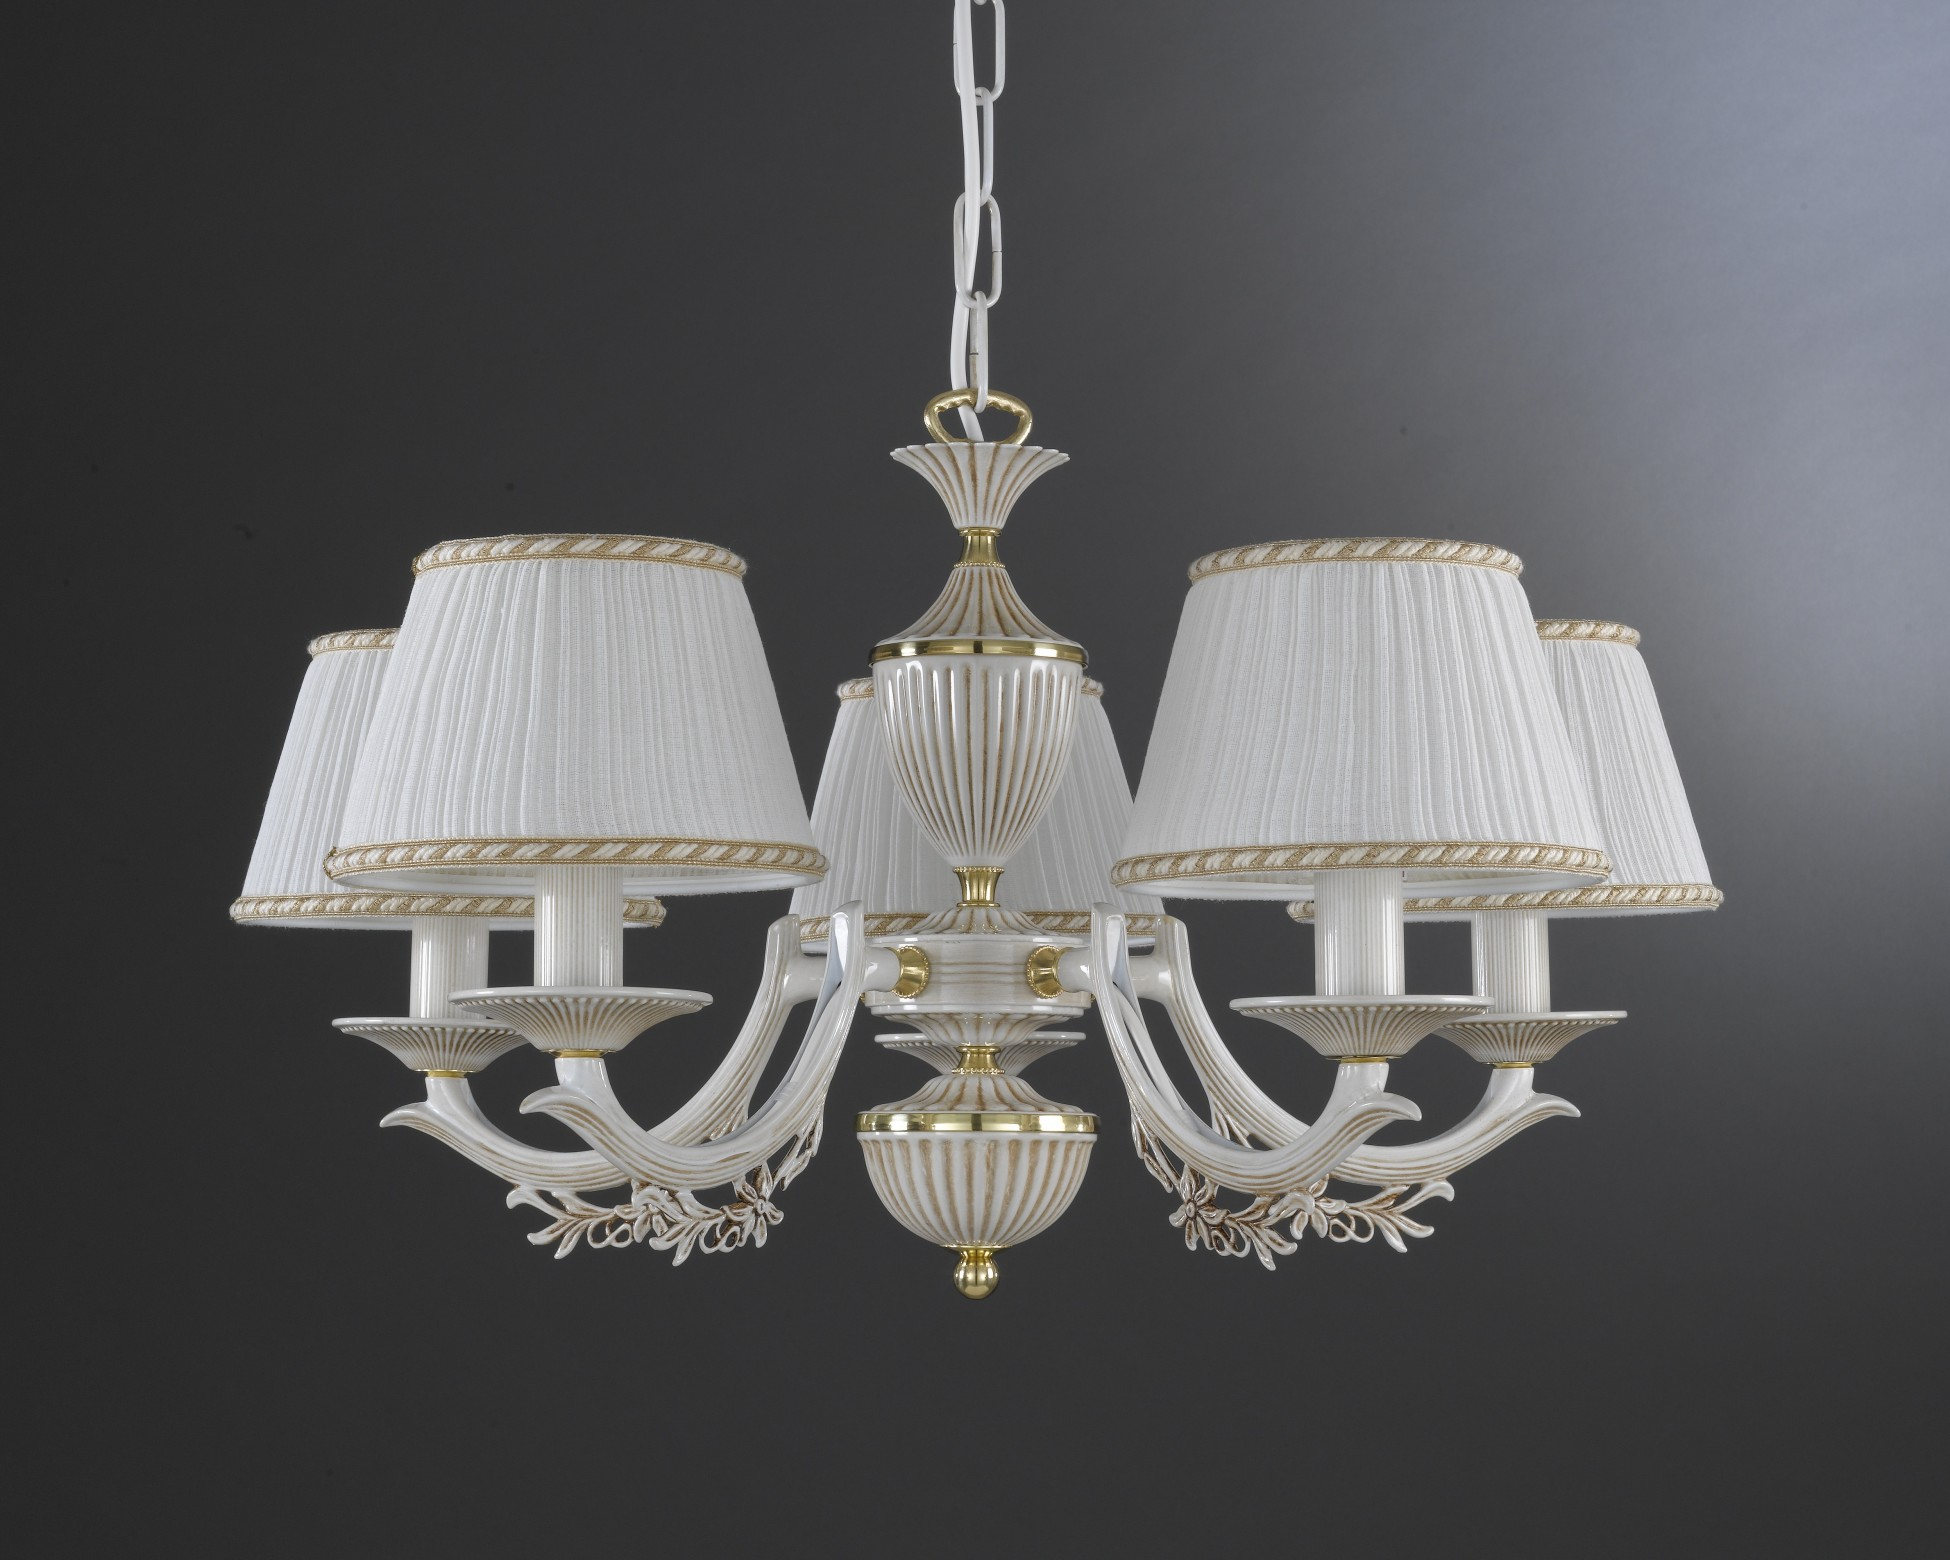 5 lights old white brass chandelier with lamp shades reccagni store - White chandelier with shades ...